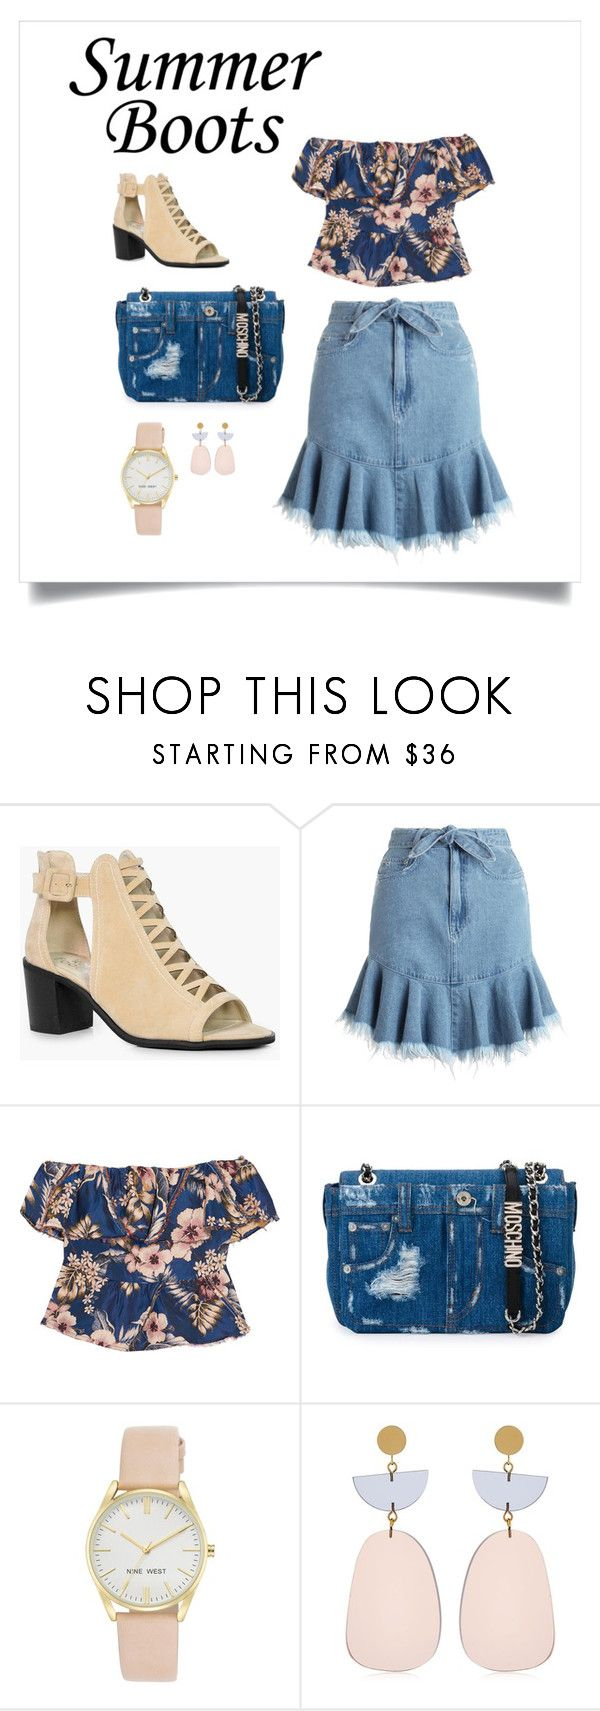 """""""Summer Boots & Denim Skirt"""" by shamrockclover ❤ liked on Polyvore featuring Boohoo, Zimmermann, Philosophy di Lorenzo Serafini, Moschino, Nine West and Isabel Marant"""